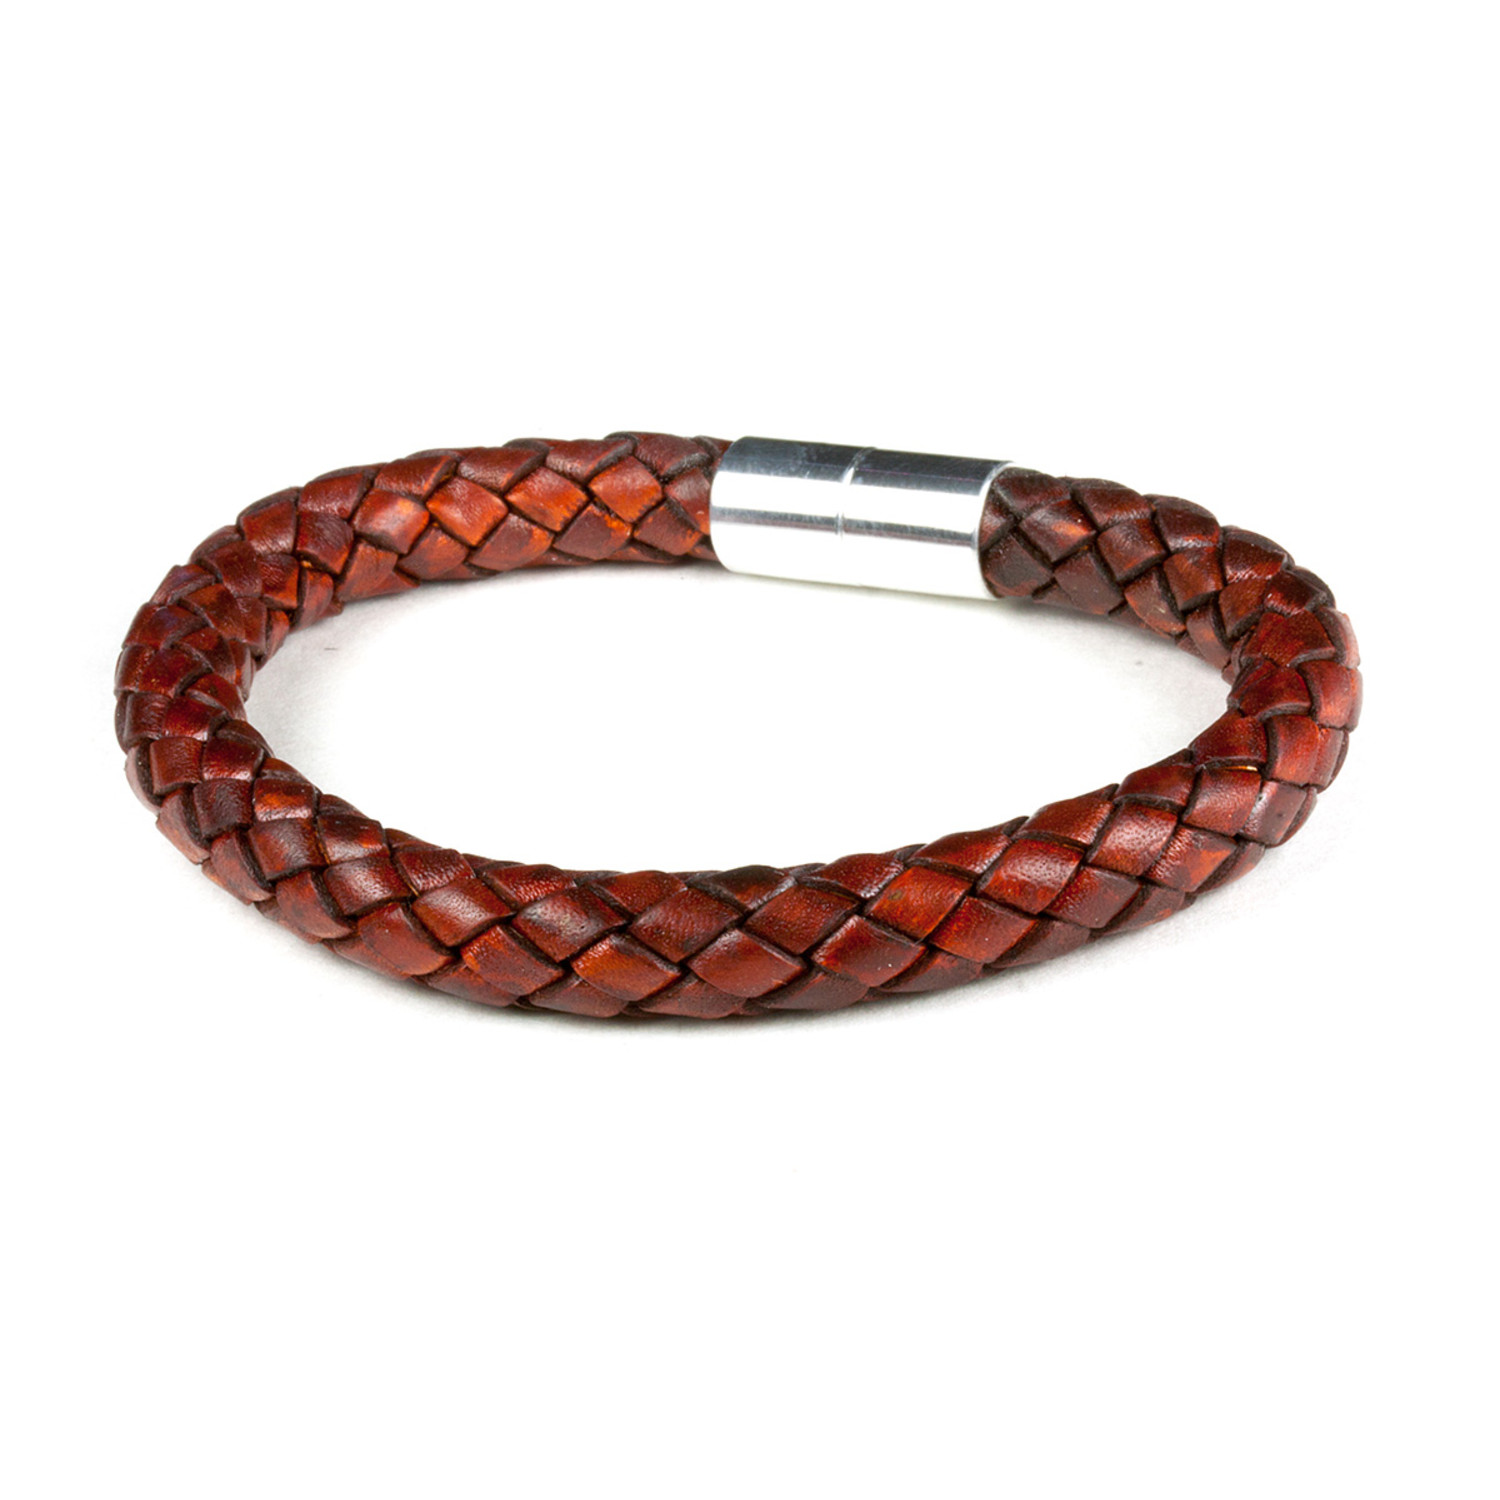 Pro Leather Magnet Therapy Bracelet Medium Brown 8mm